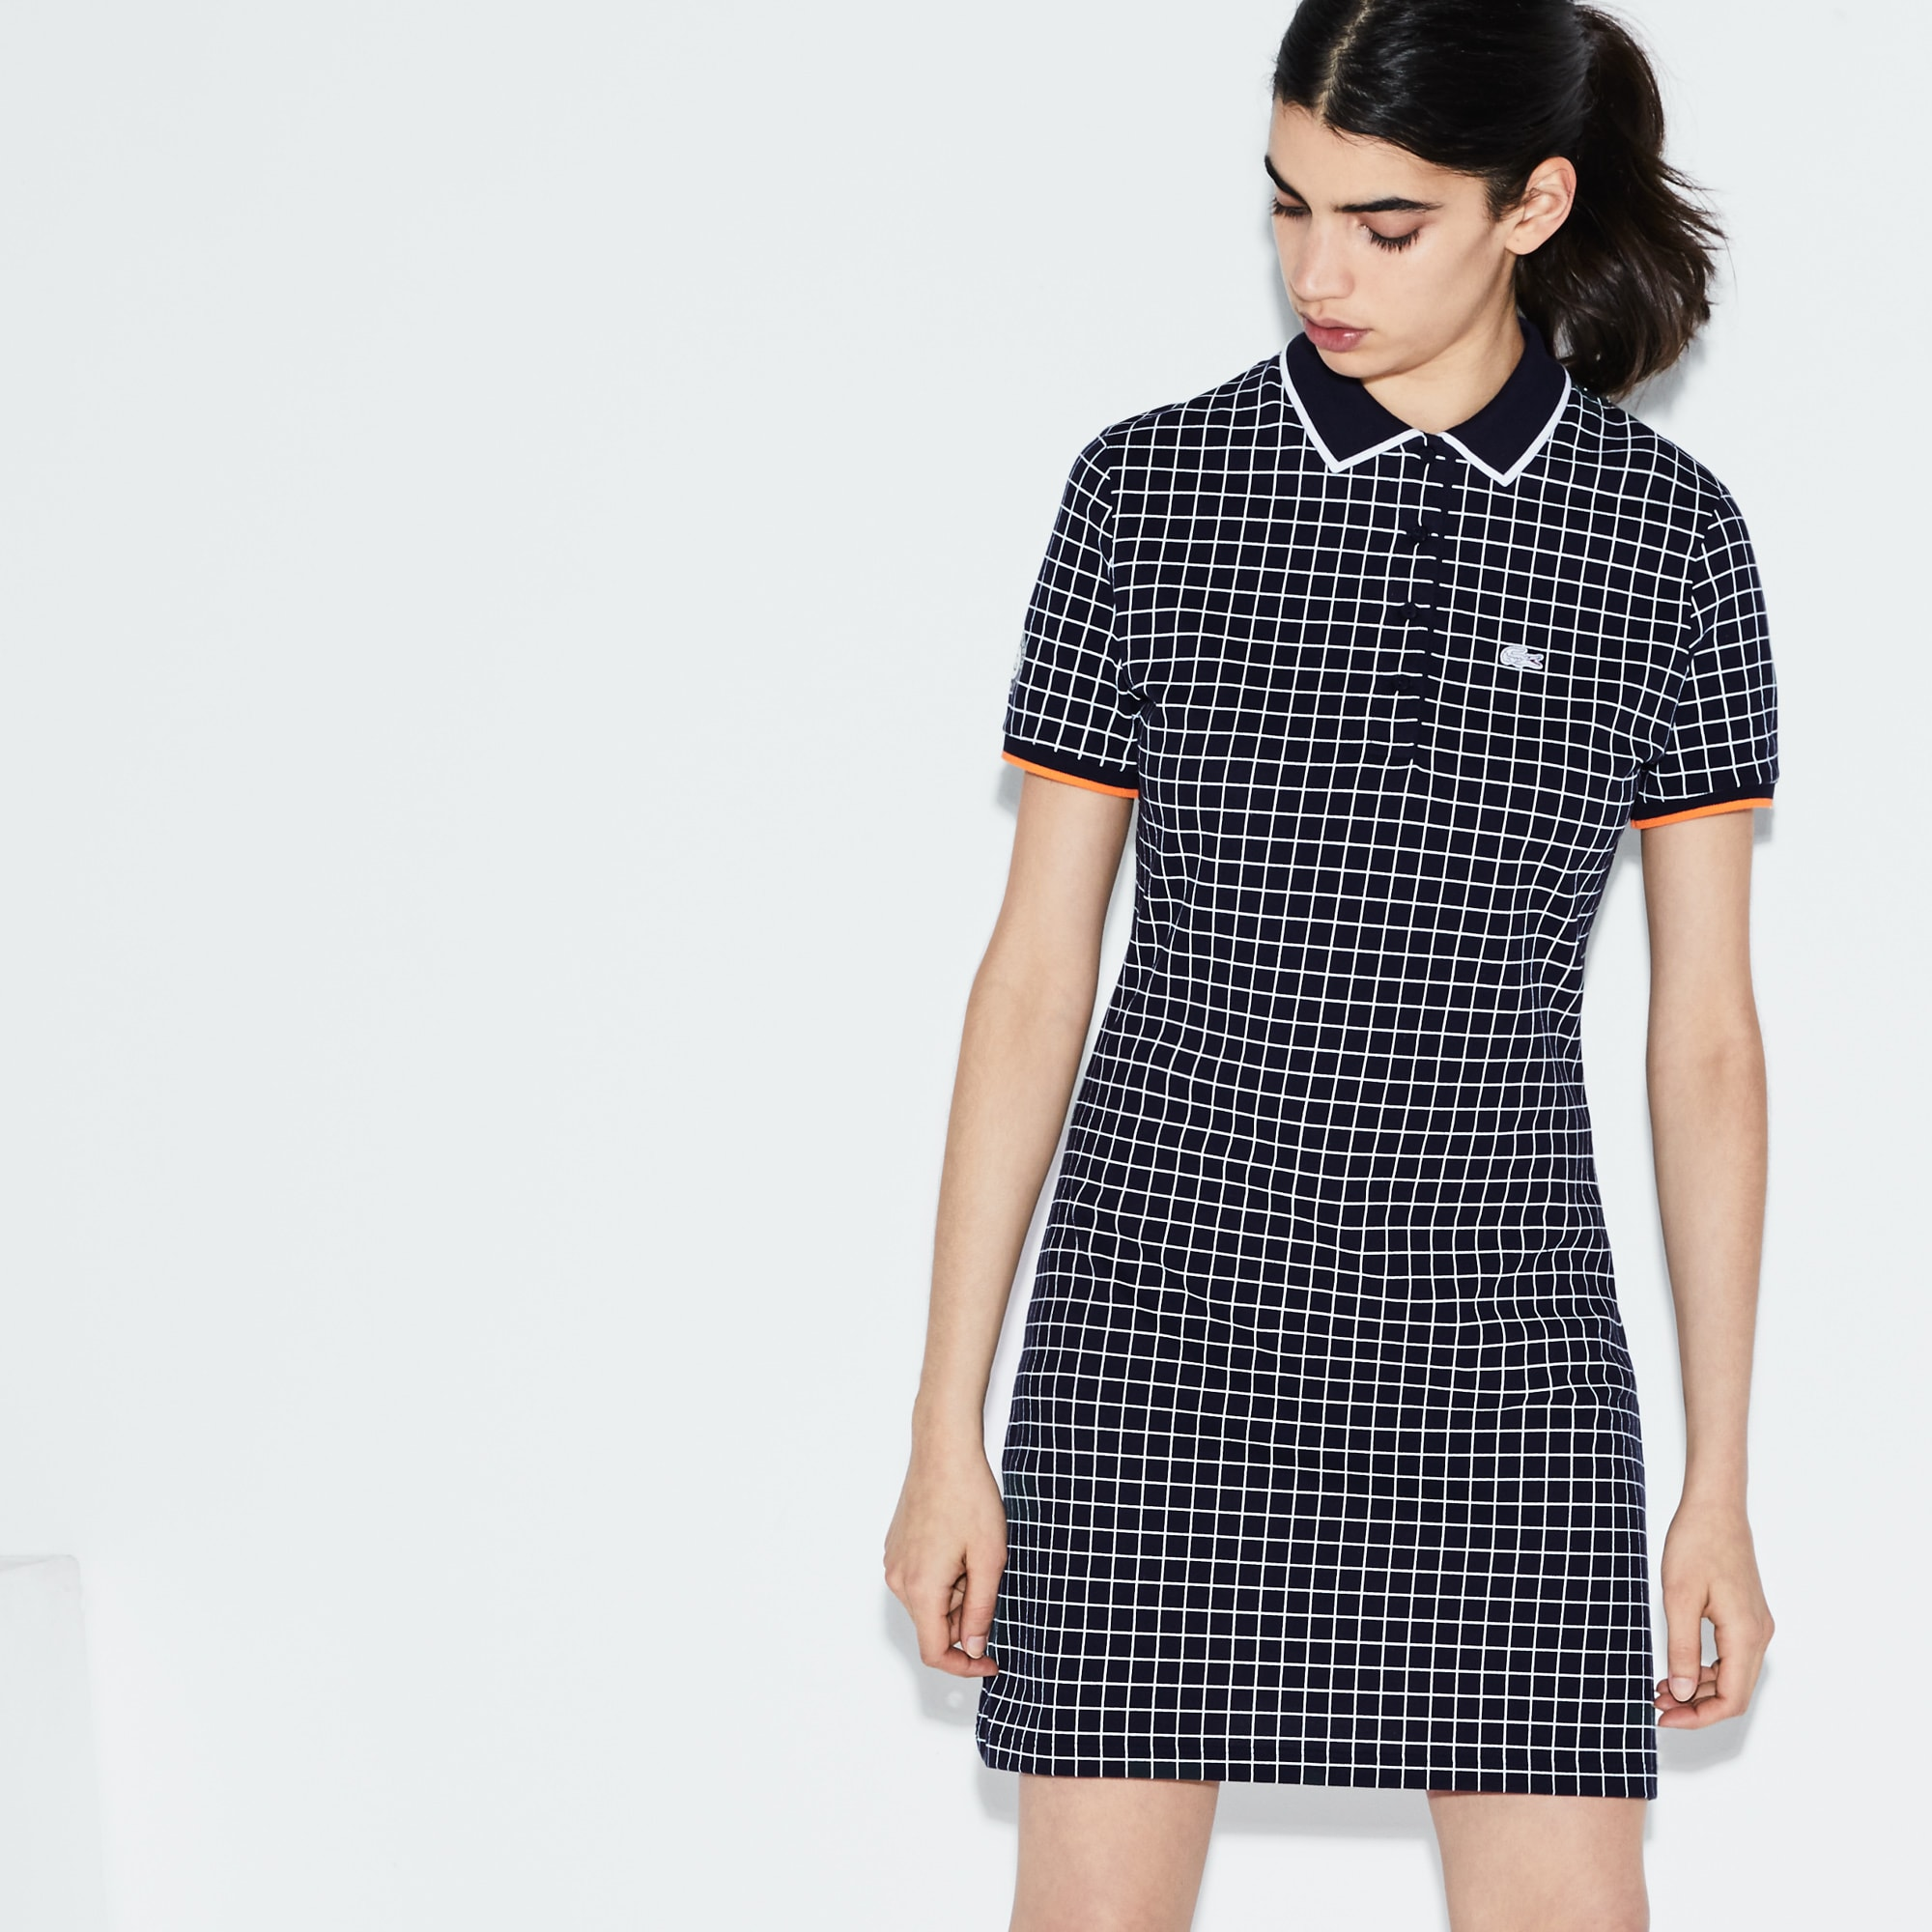 Women's Lacoste SPORT Roland Garros Edition Print Mini Piqué Polo Dress